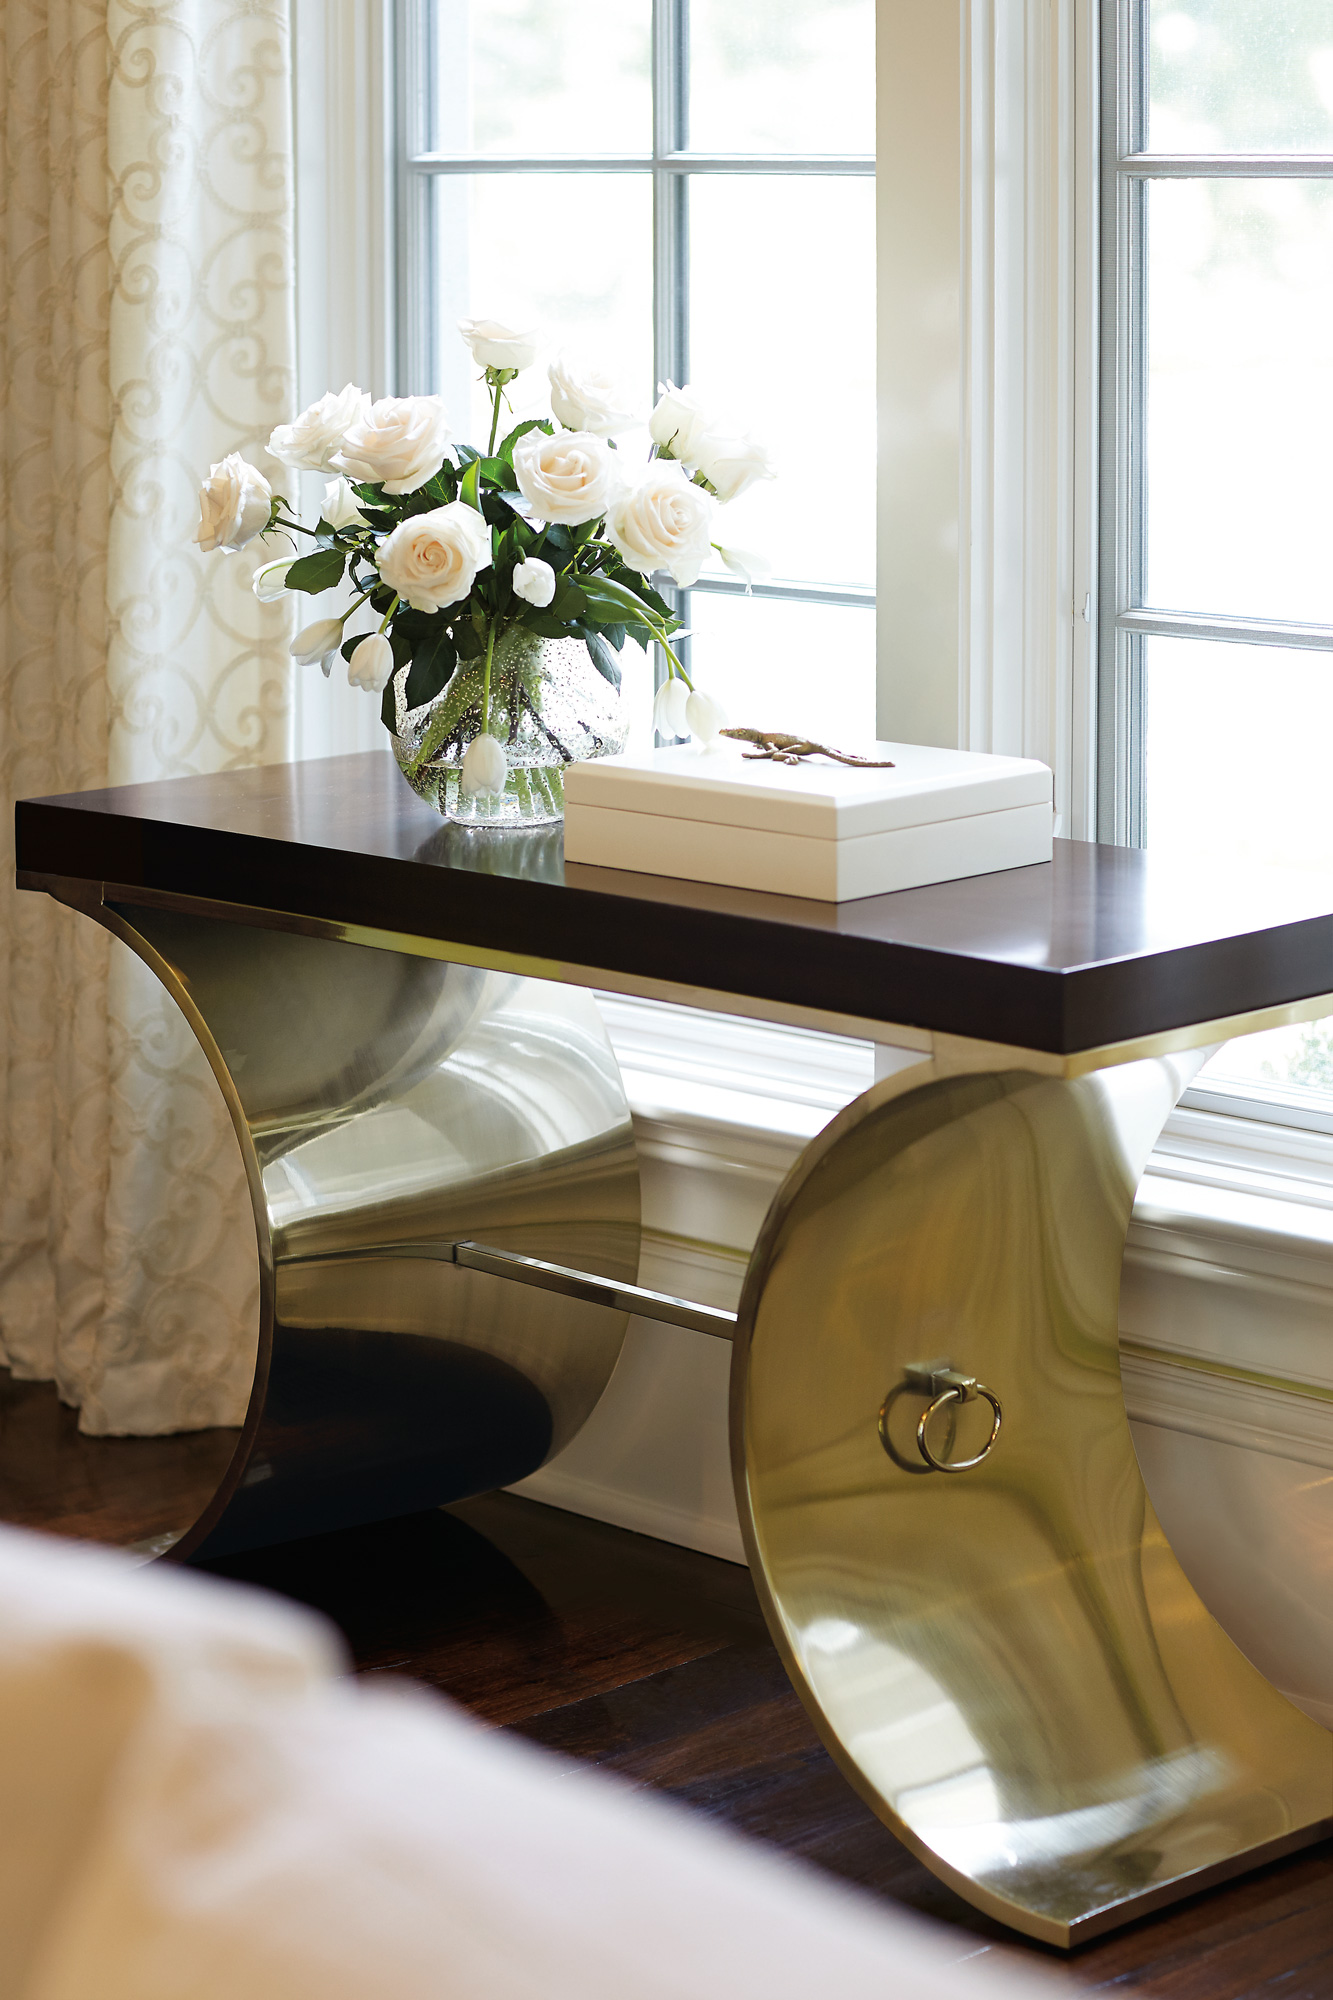 Elegant Console Table with Baskets Photos Of Basket Decorative